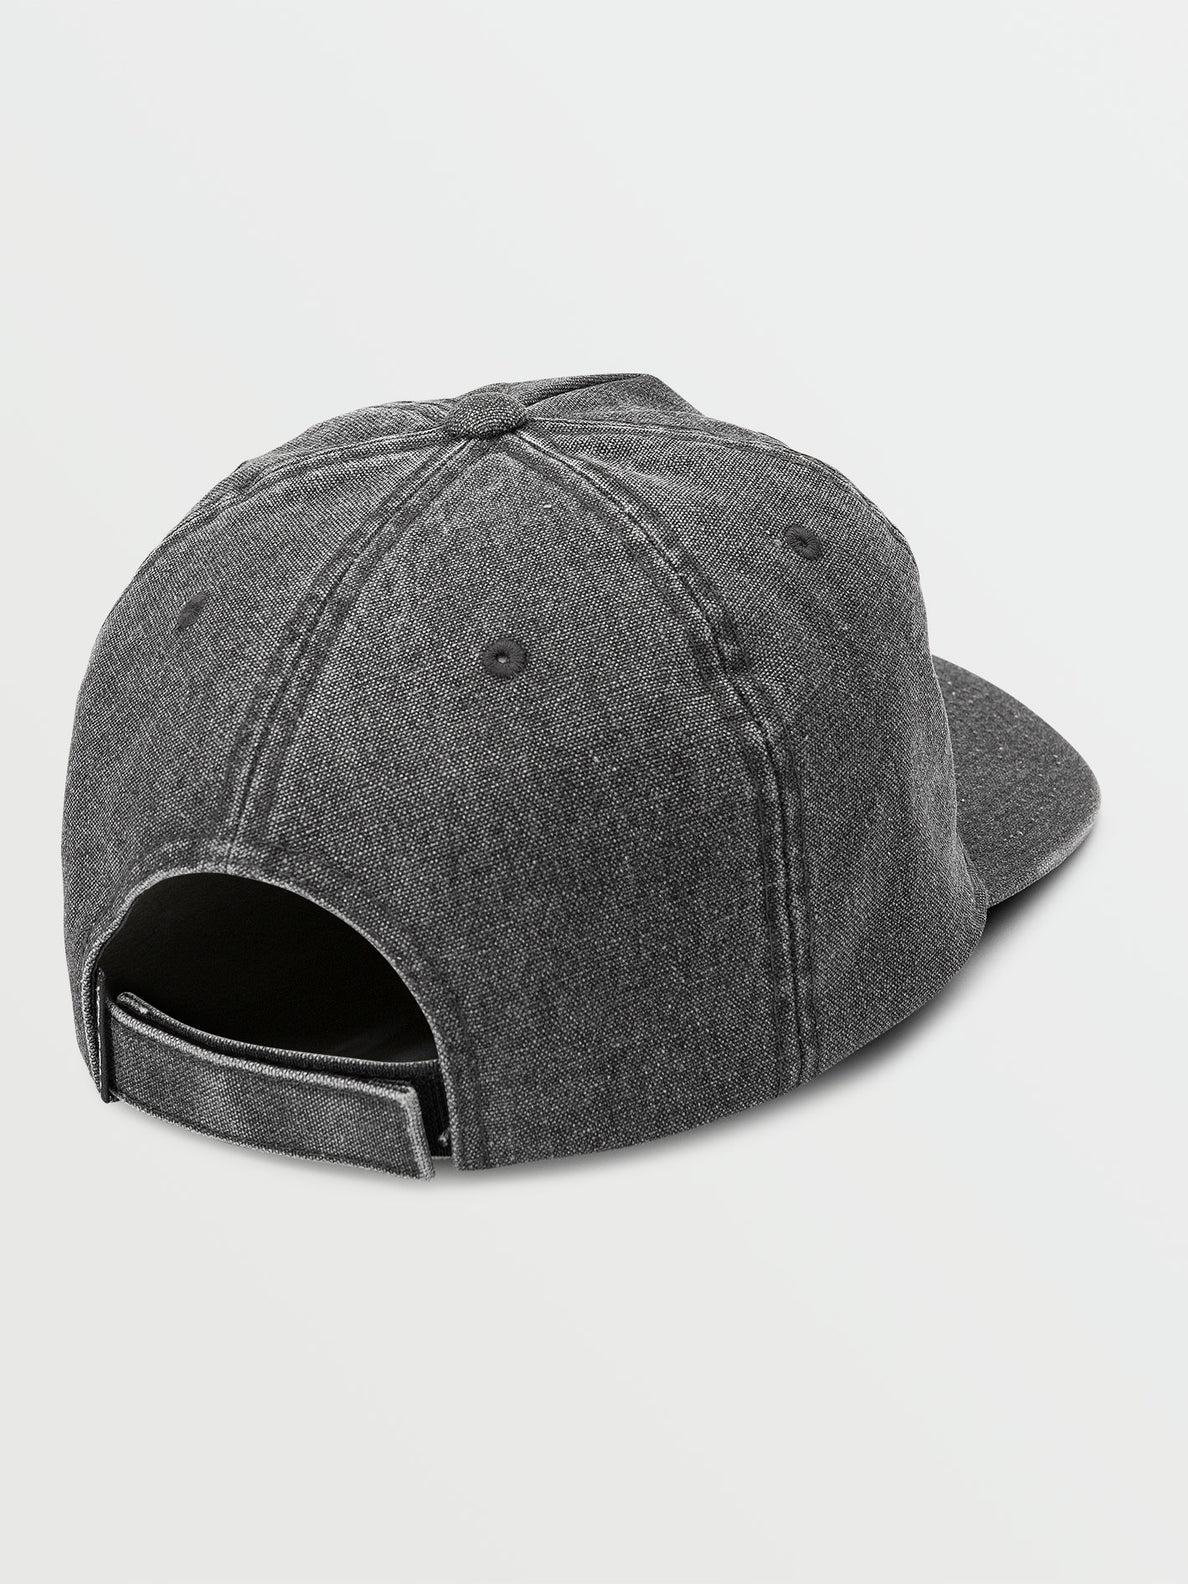 Old Mill Hat - Black